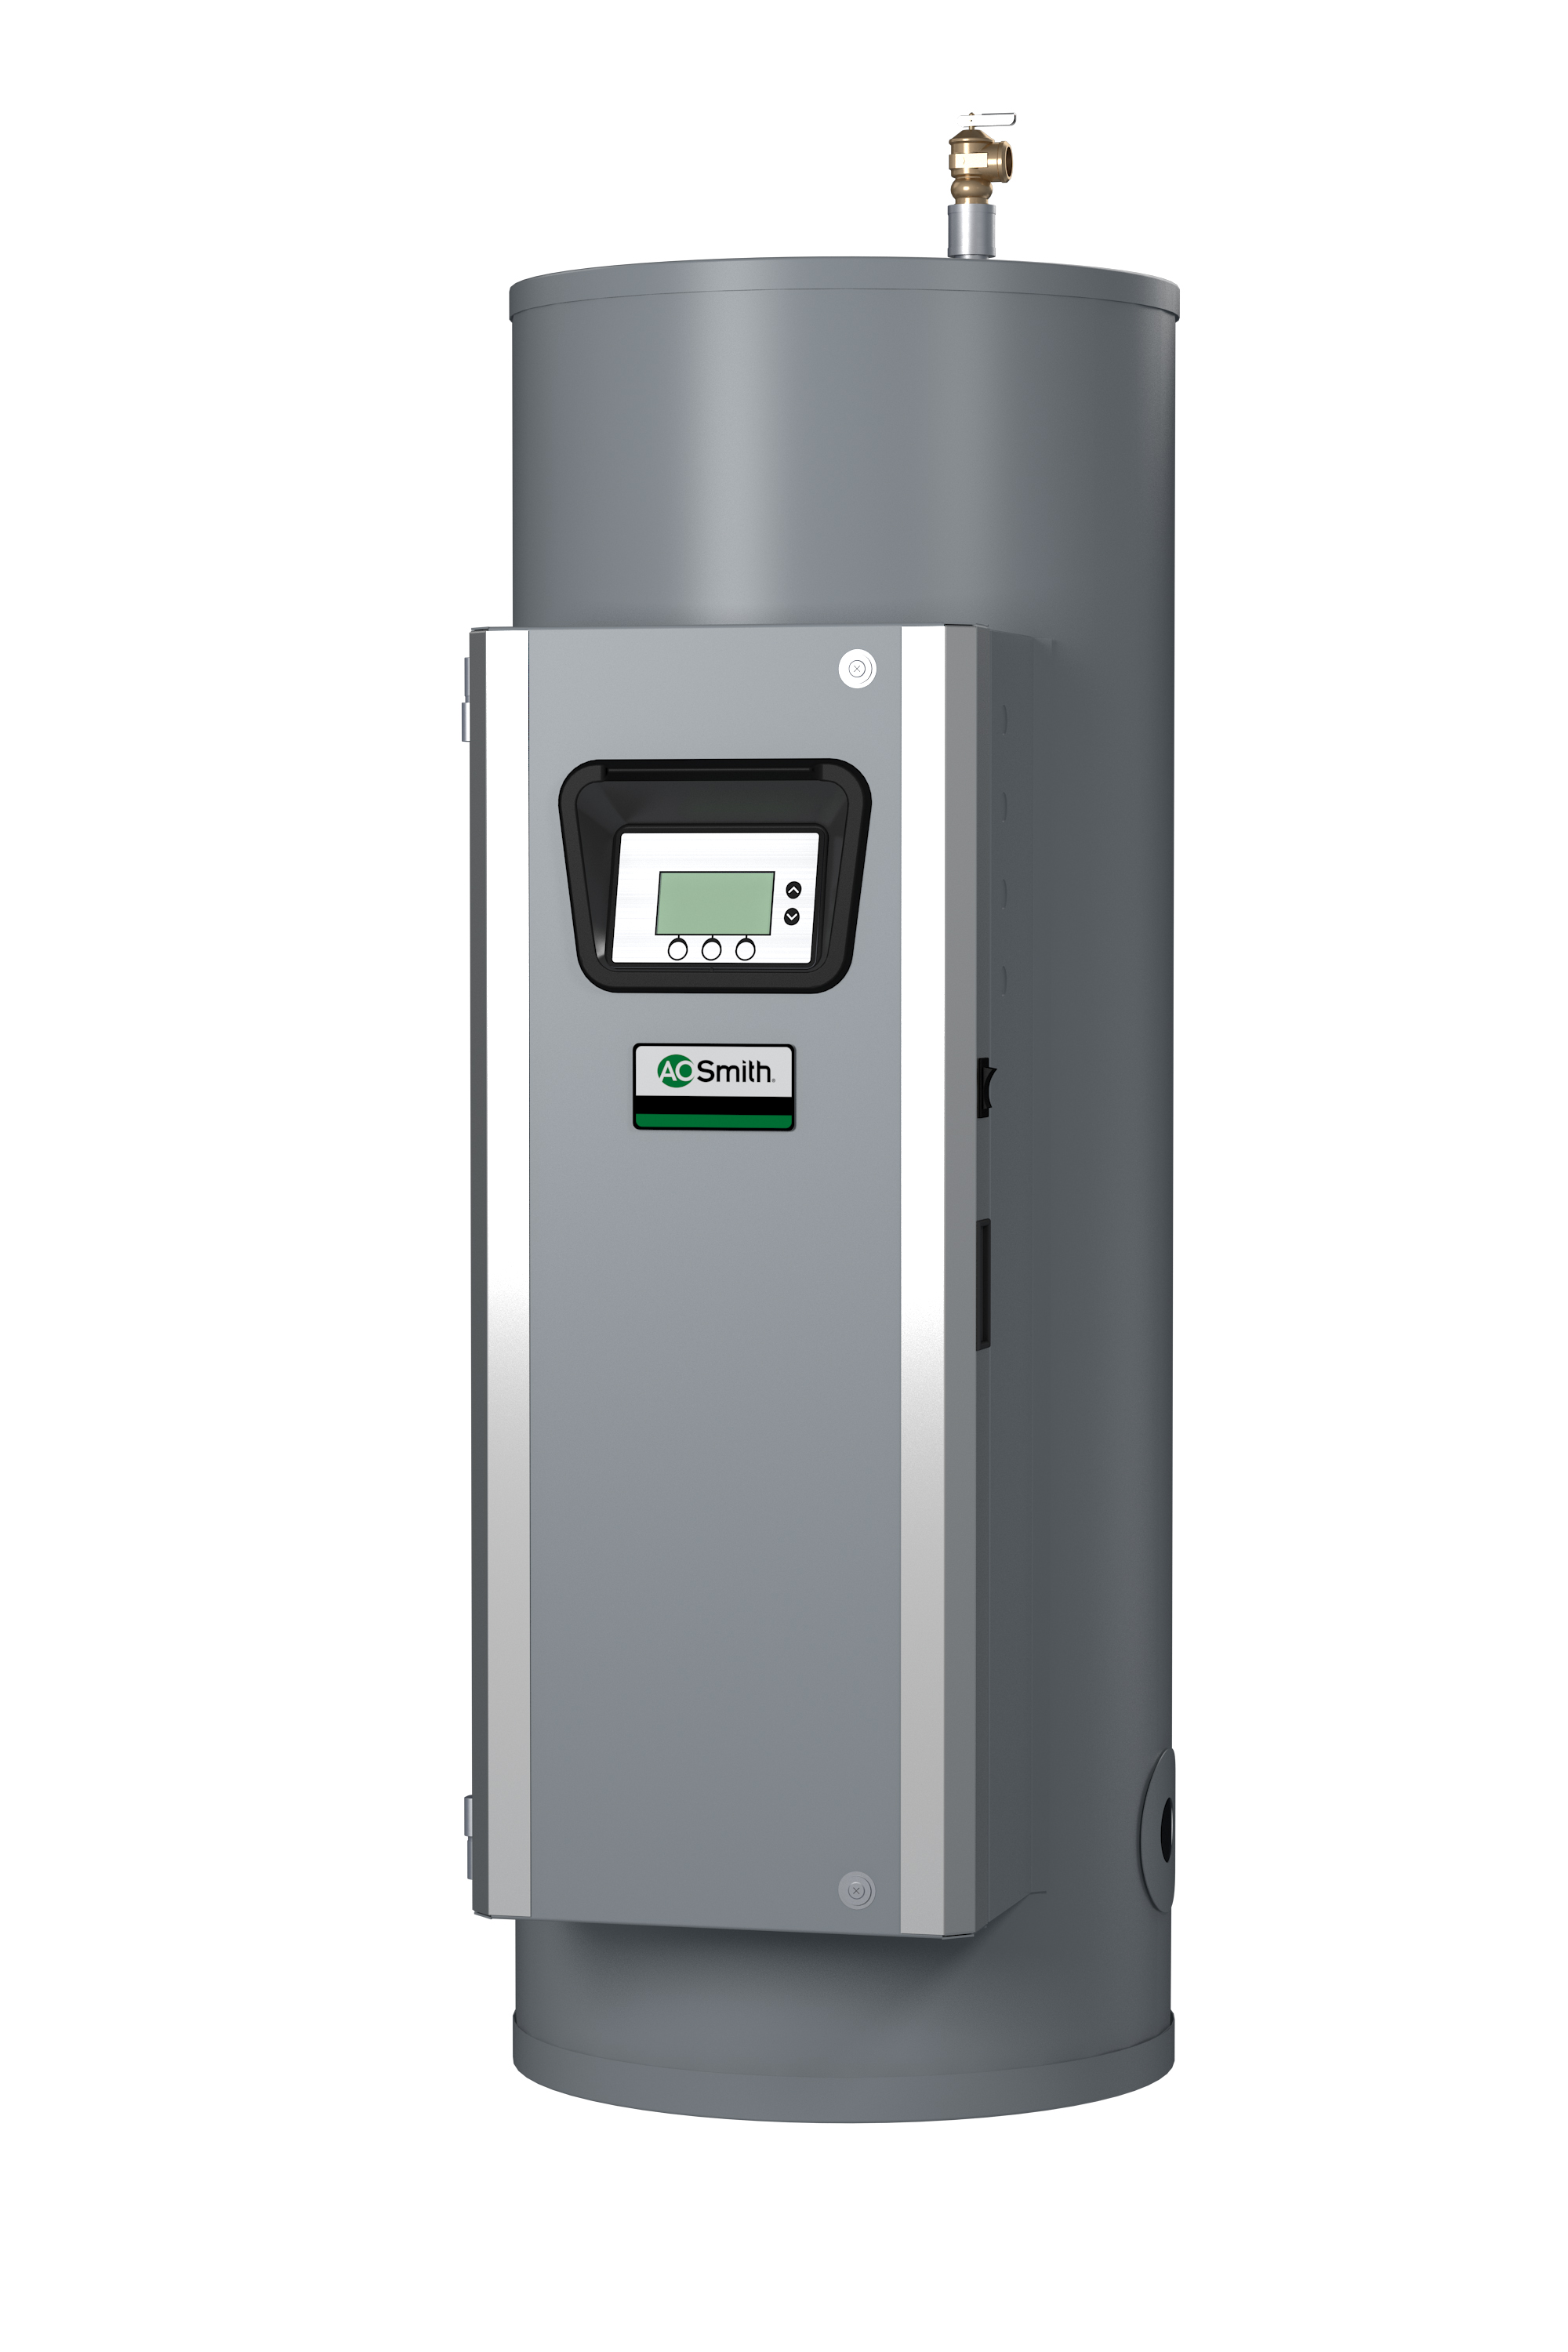 AO SMITH DSE-100A-15, 100 GALLONS, 15KW, 240 VOLT, 36.1 AMPS, 3 PHASE, 1 ELEMENT, ASME CUSTOM Xi SERIES HEAVY DUTY COMMERCIAL ELECTRIC WATER HEATER